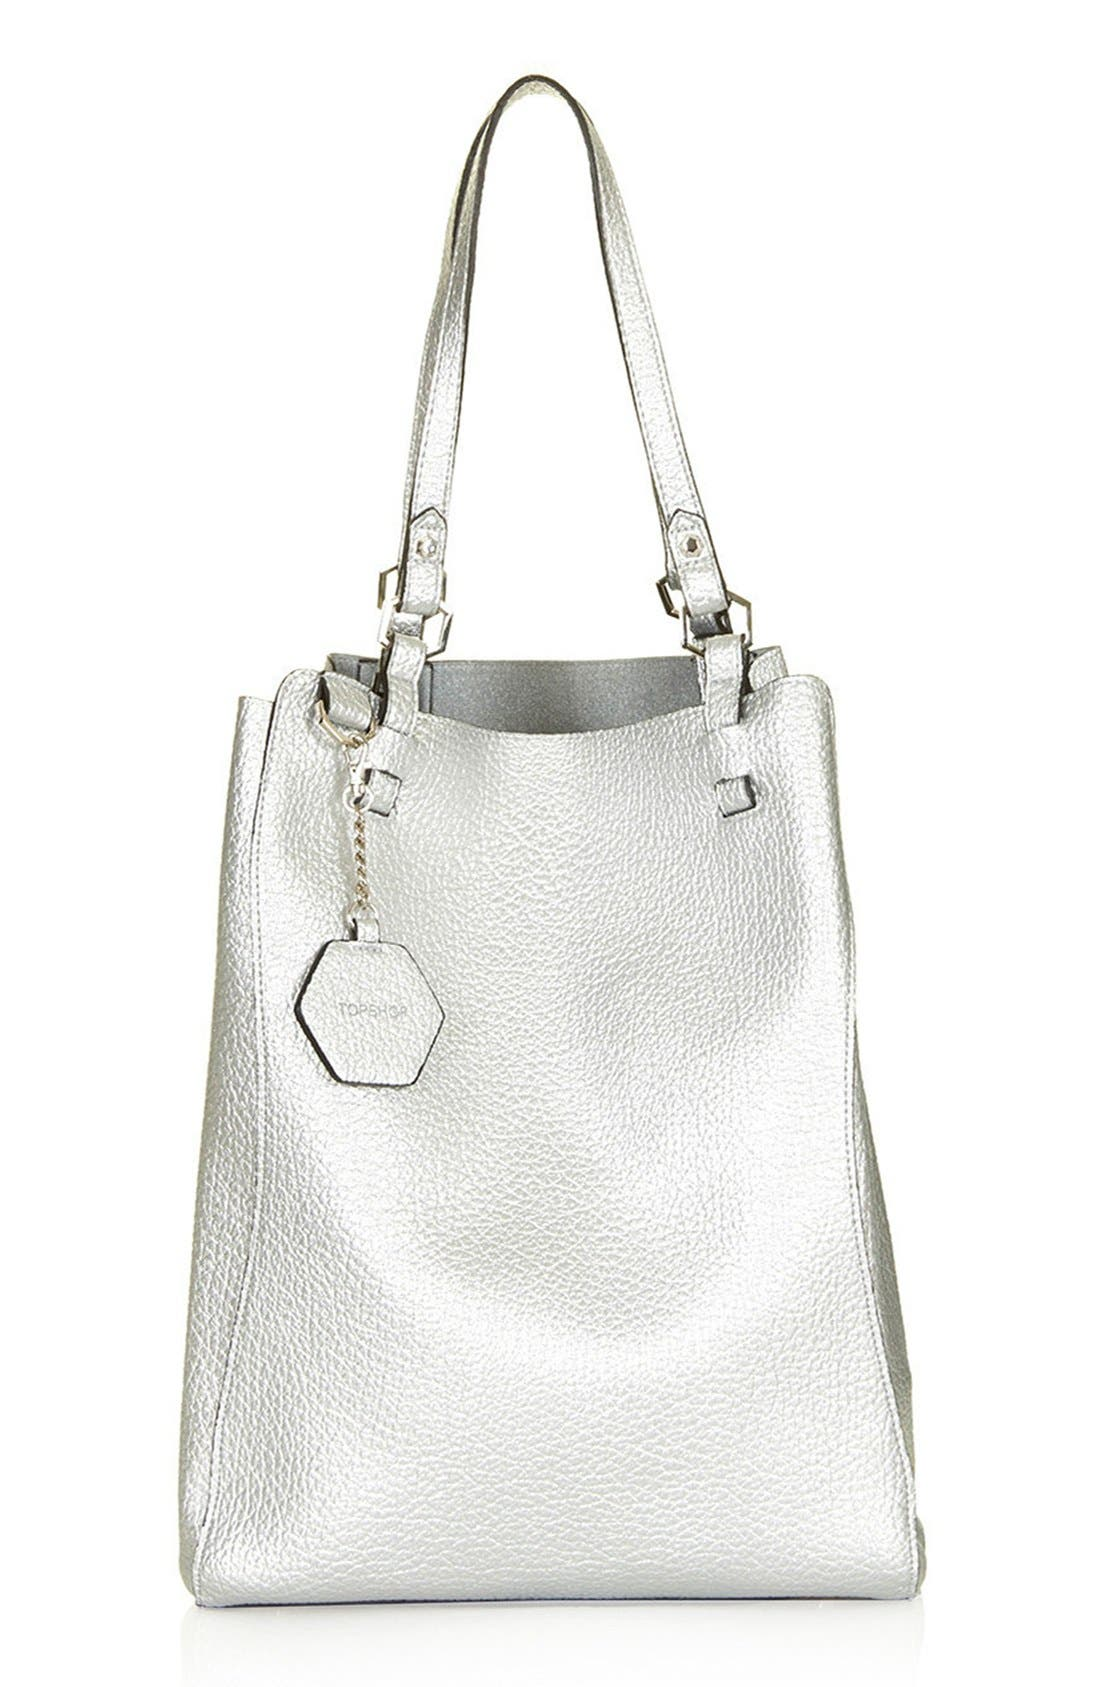 Main Image - Topshop 'Hex' Faux Leather Tote